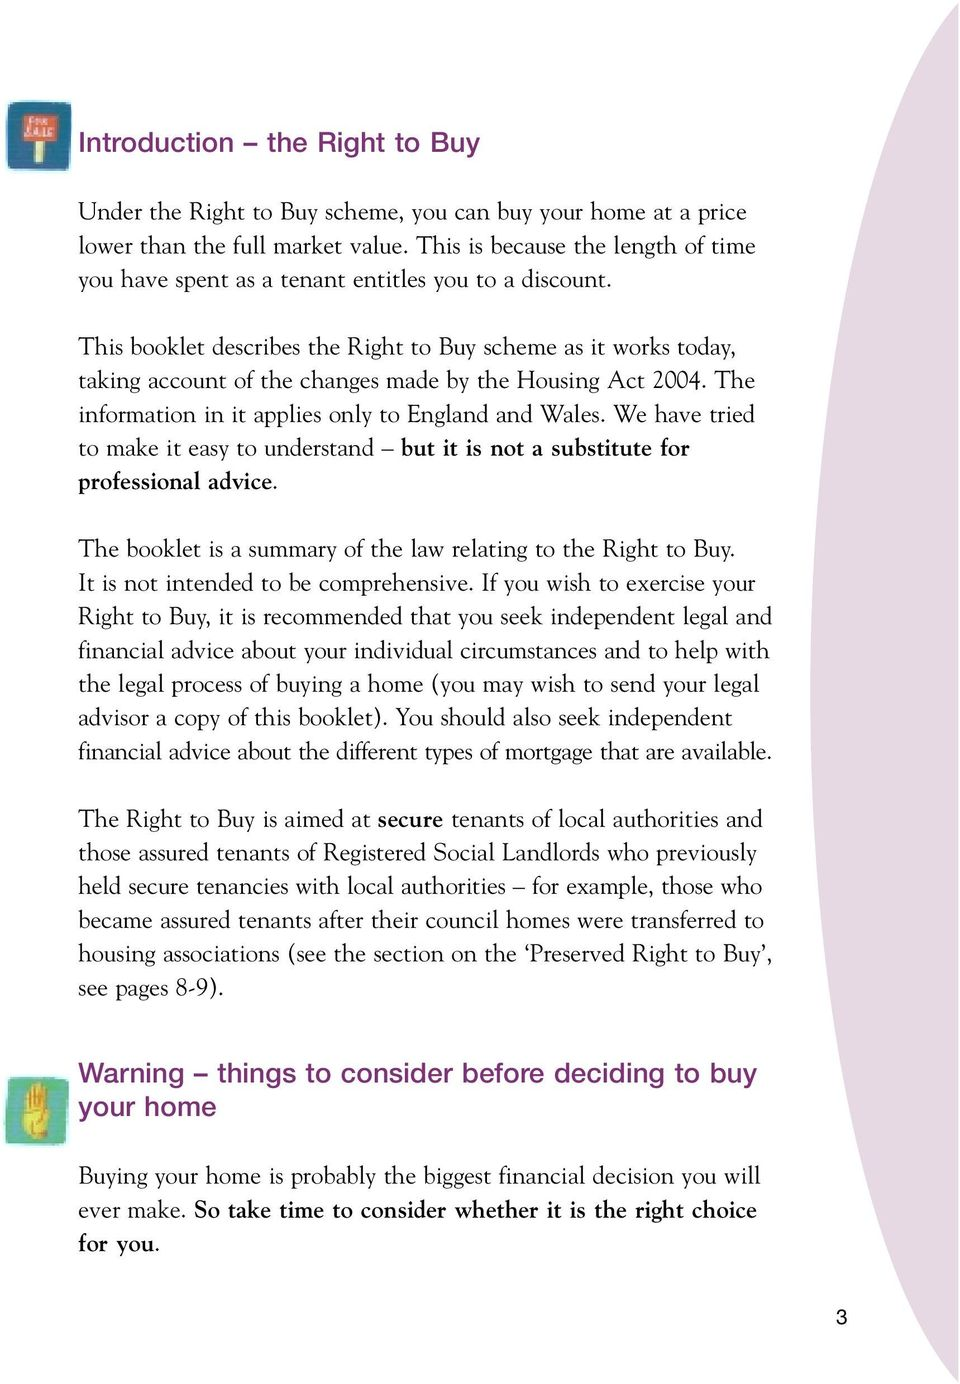 This booklet describes the Right to Buy scheme as it works today, taking account of the changes made by the Housing Act 2004. The information in it applies only to England and Wales.